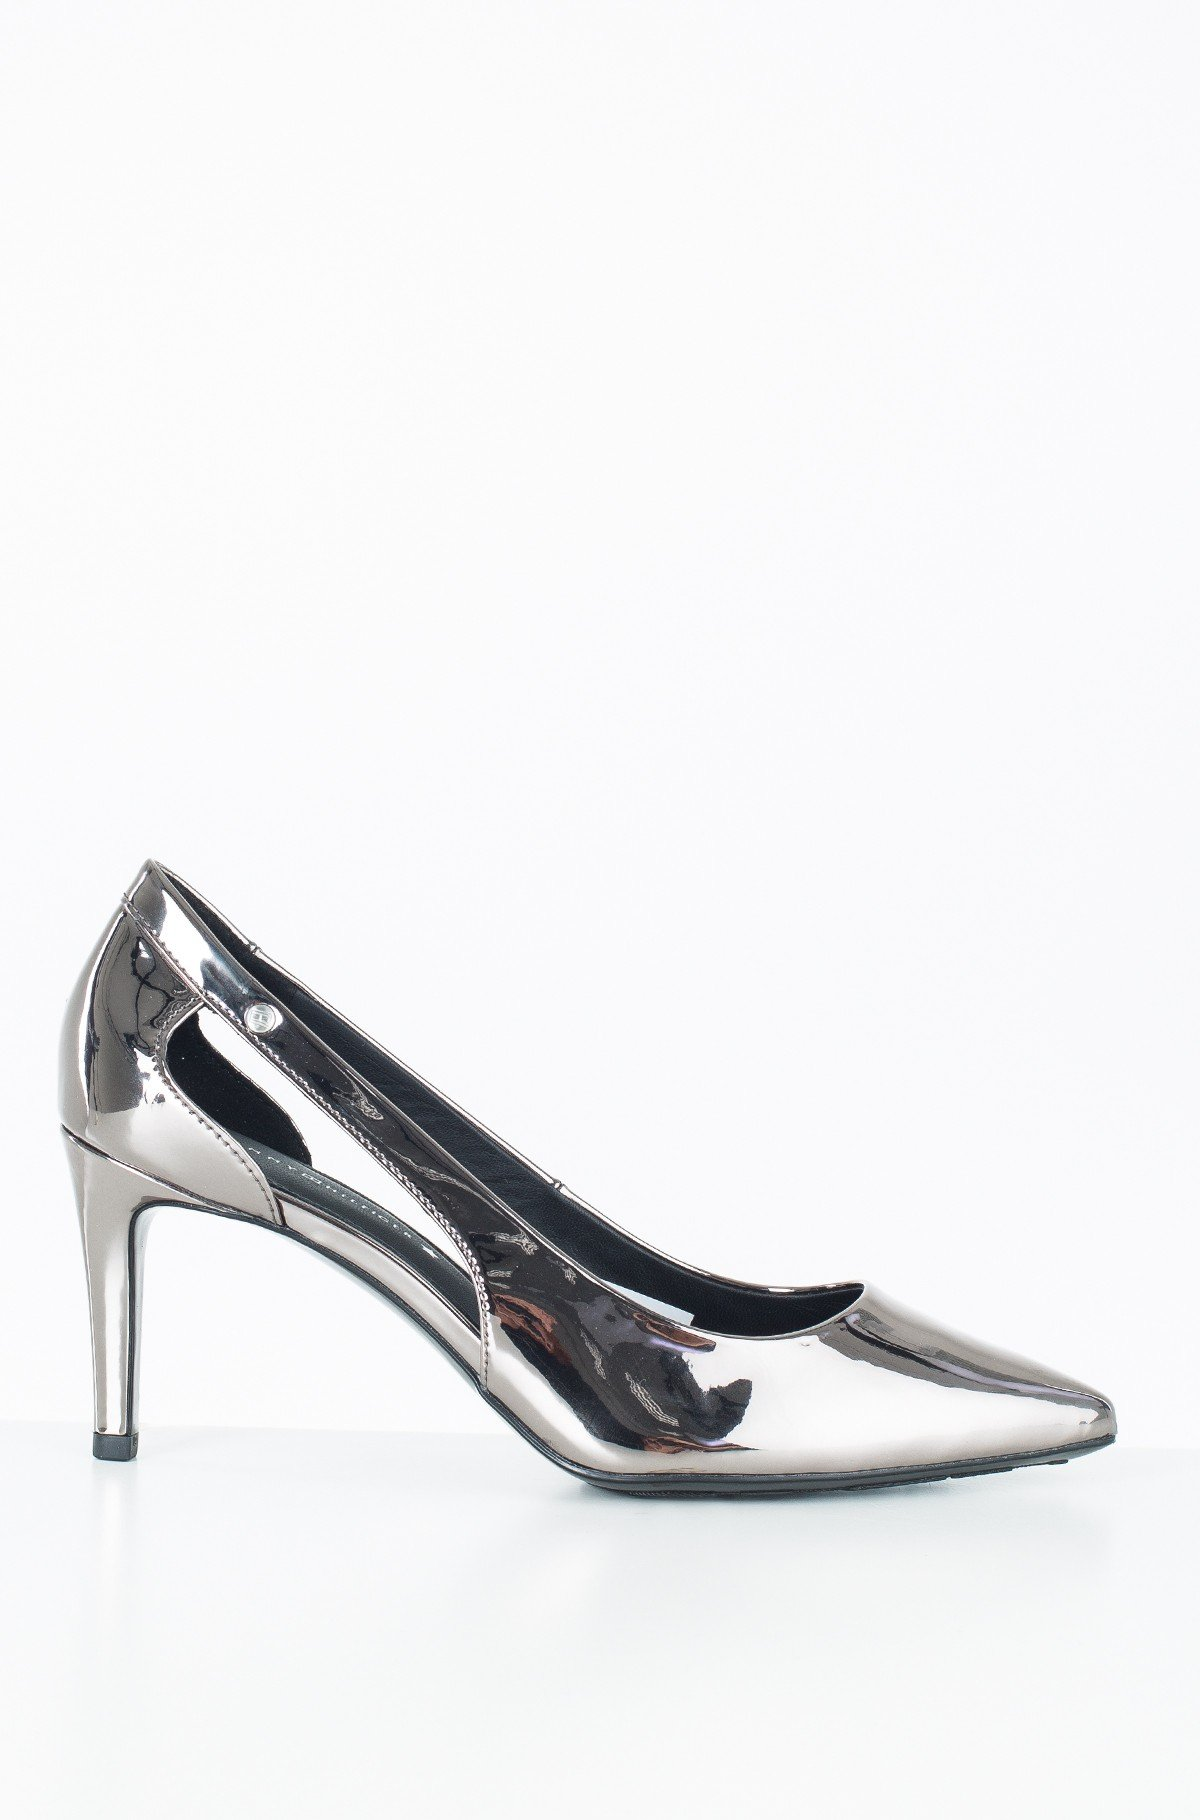 Kingad MIRROR METALLIC CUT OUT PUMP-full-1